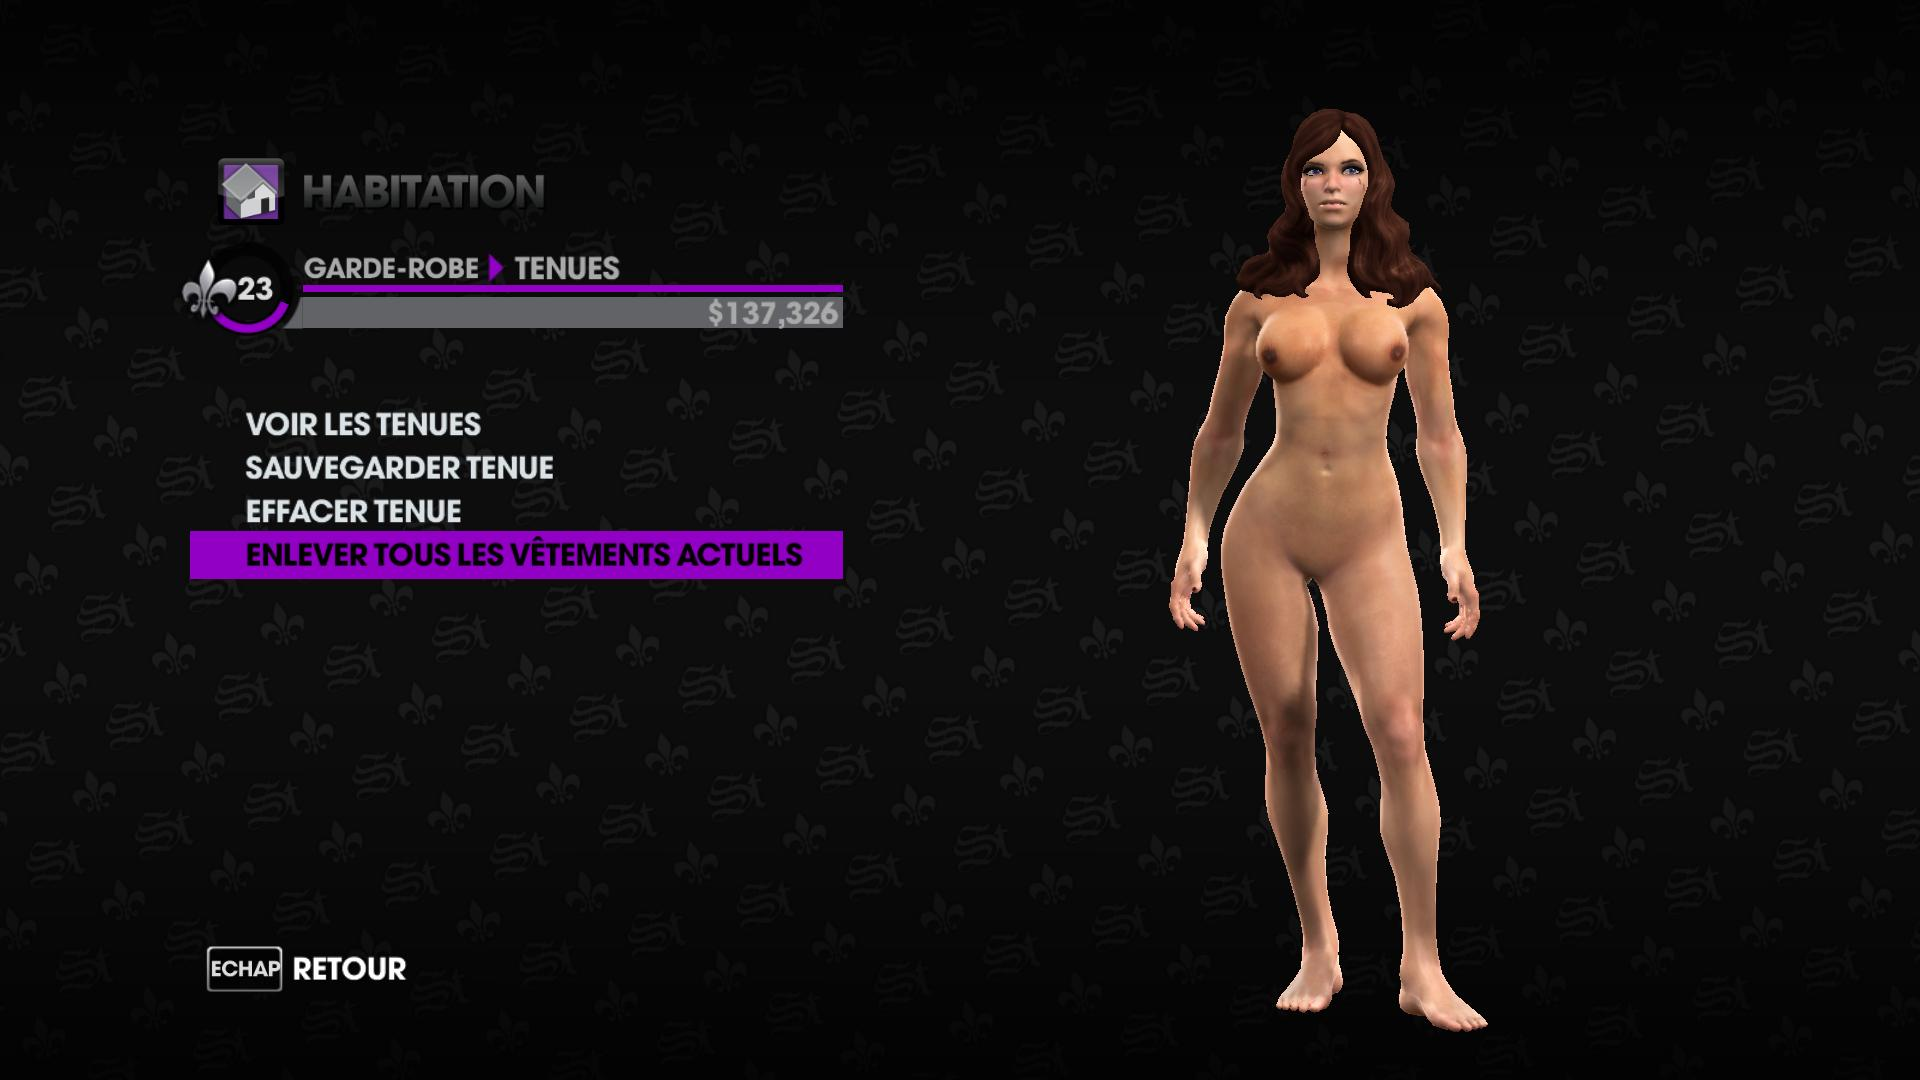 Saints row 4 nude mod download for  adult images